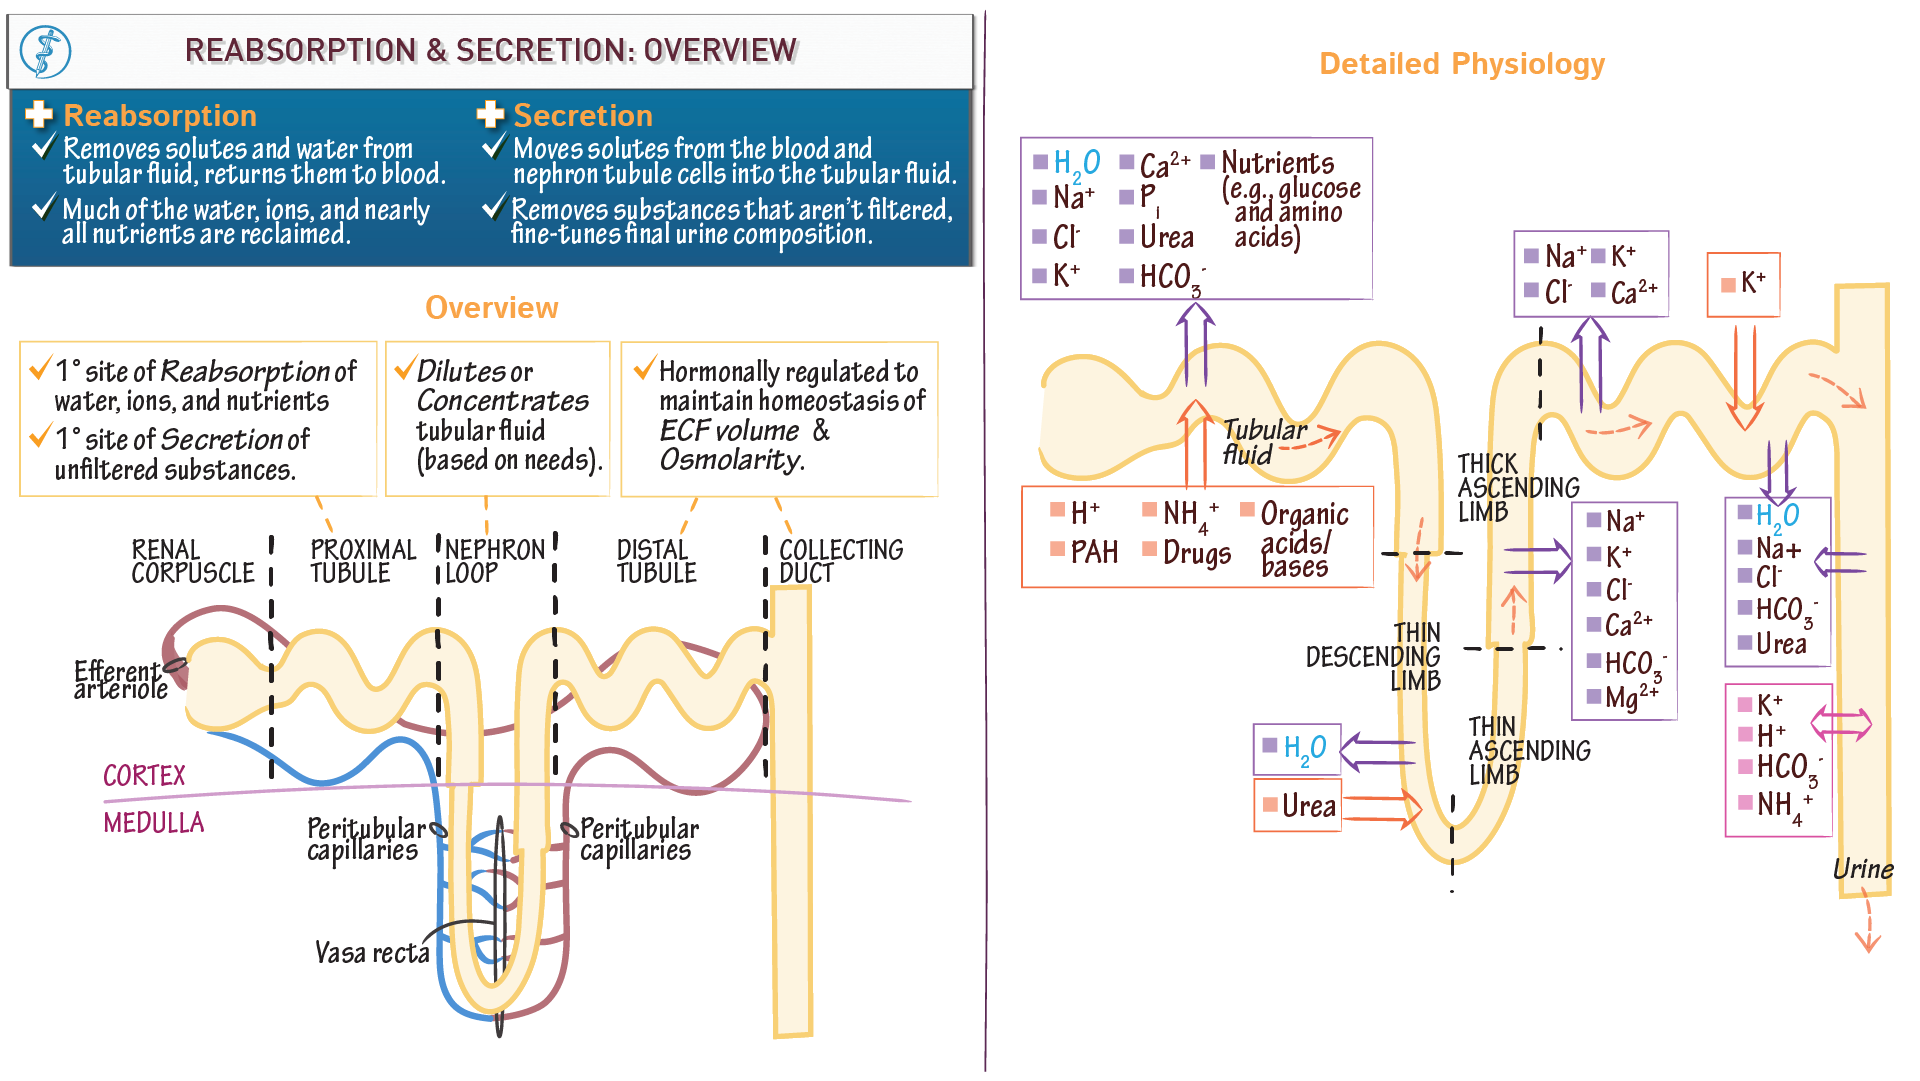 Anatomy physiology fundamentals overview of reabsorption and anatomy physiology fundamentals overview of reabsorption and secretion in the nephron draw it to know it ccuart Choice Image